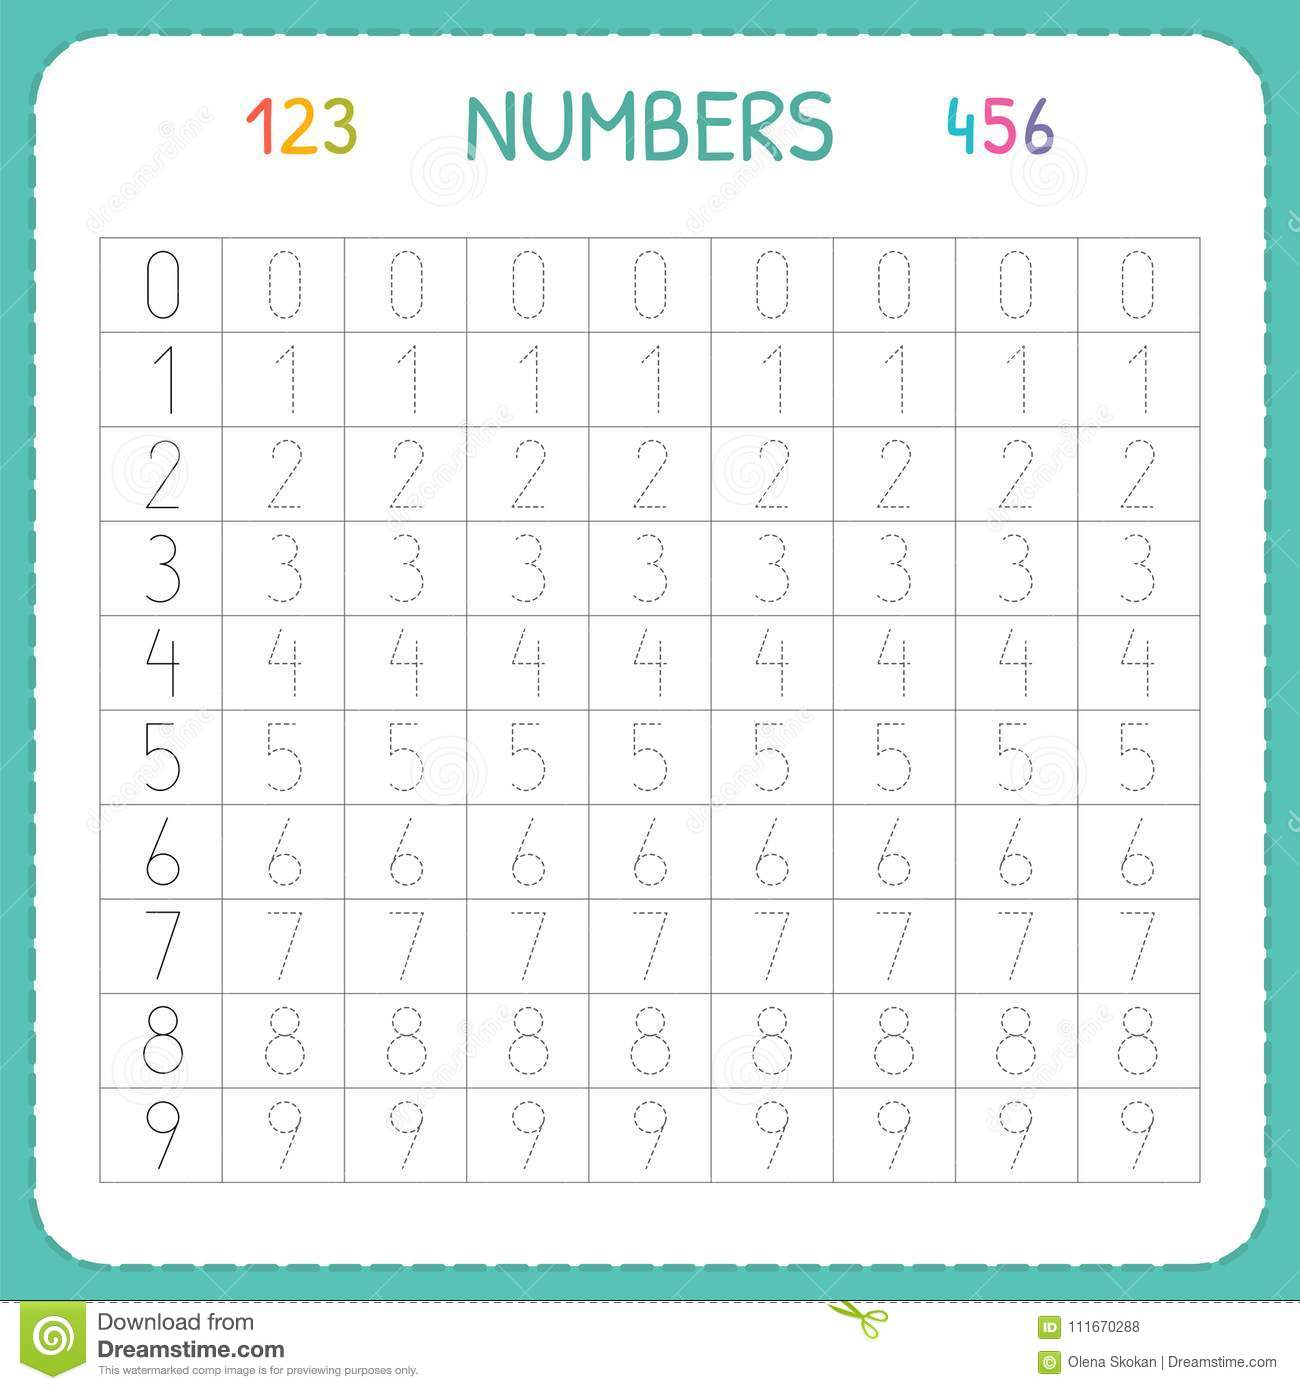 Numbers For Kids Worksheet For Kindergarten And Preschool Training To Write And Count Numbers